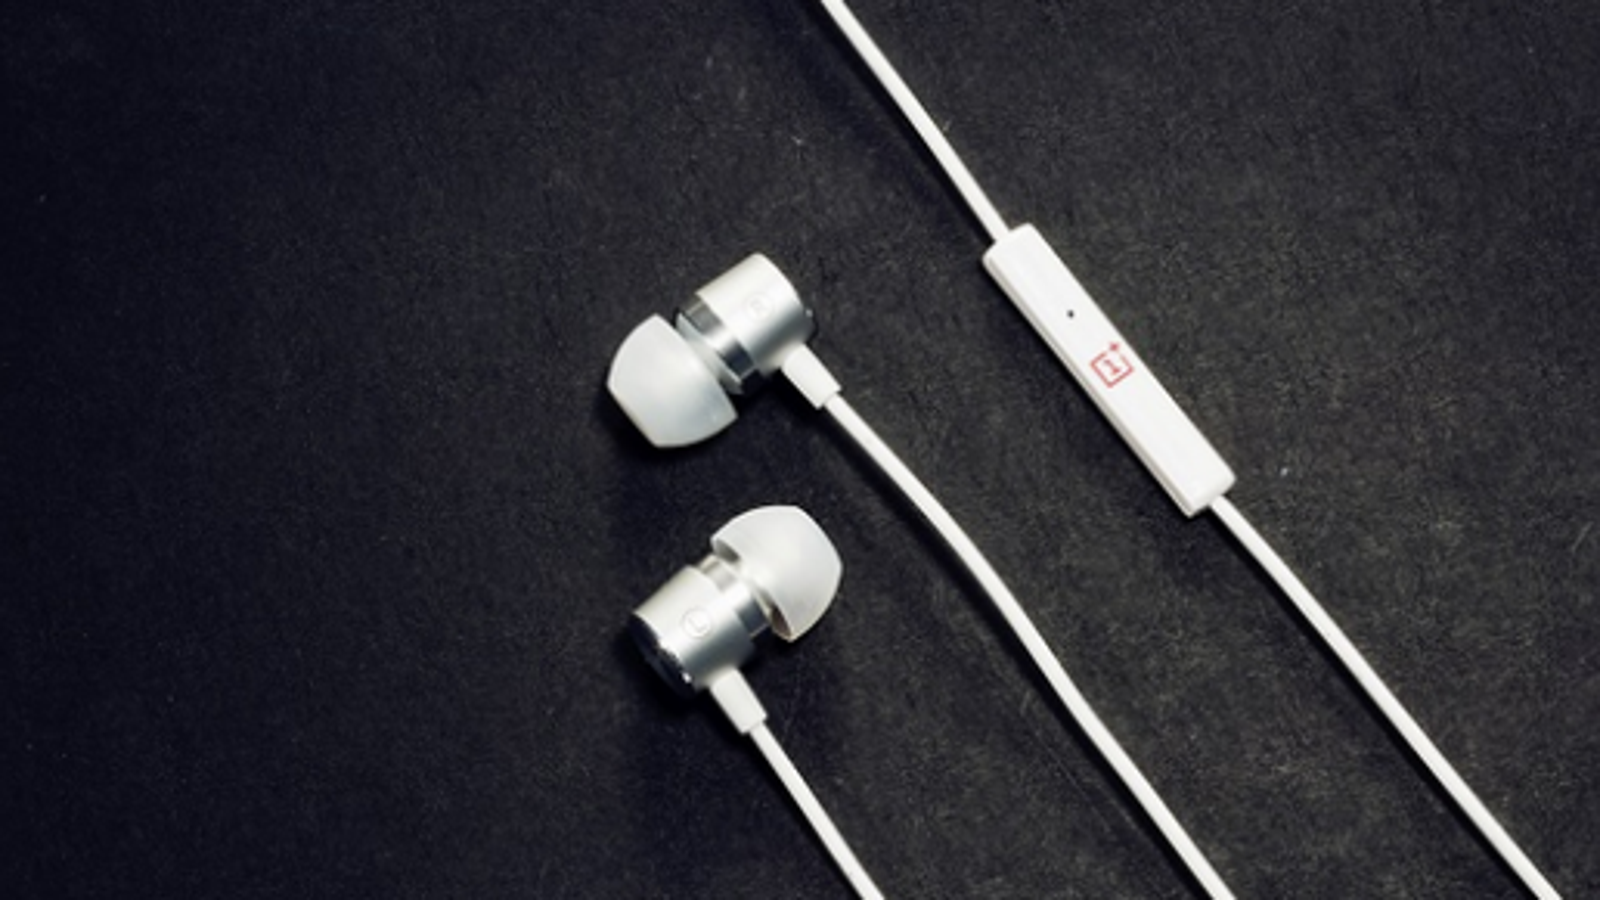 iphone earbuds extra long cord